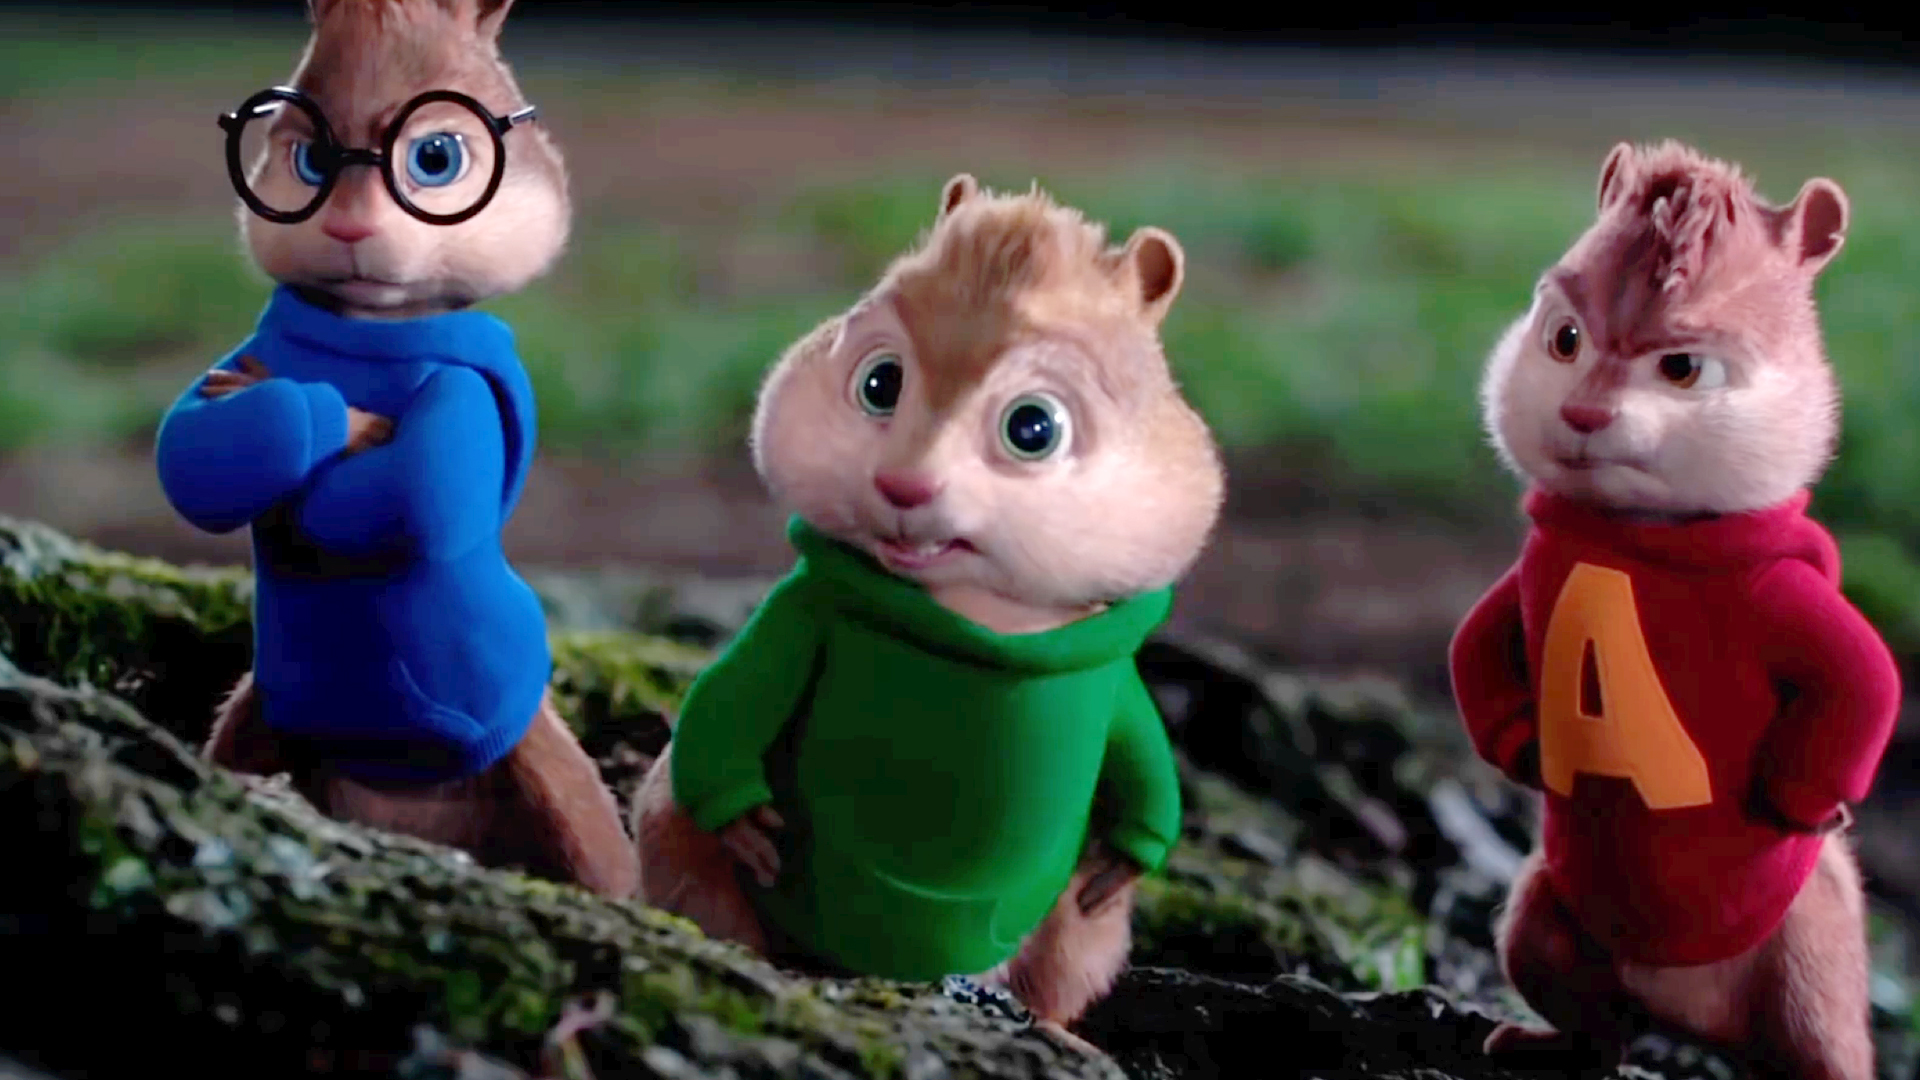 alvin and the chipmunks: the road chip: alvin and the chipmunks the